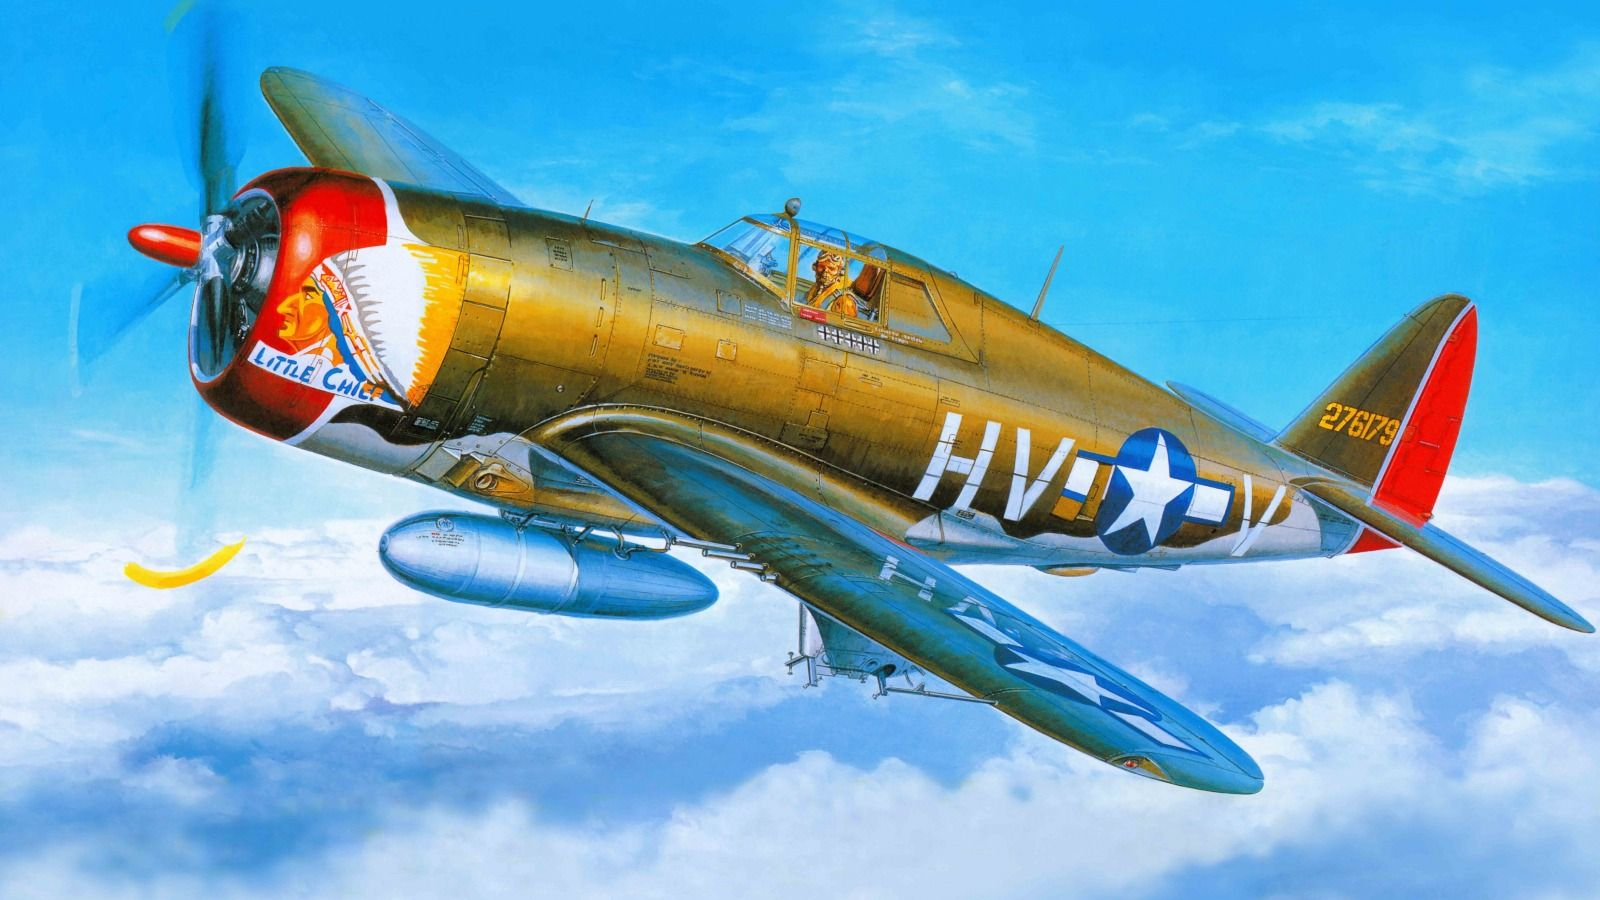 Download wallpaper art, airplane, republic, p-47, thunderbolt, fighter, air force, aviation resolution 1600x900